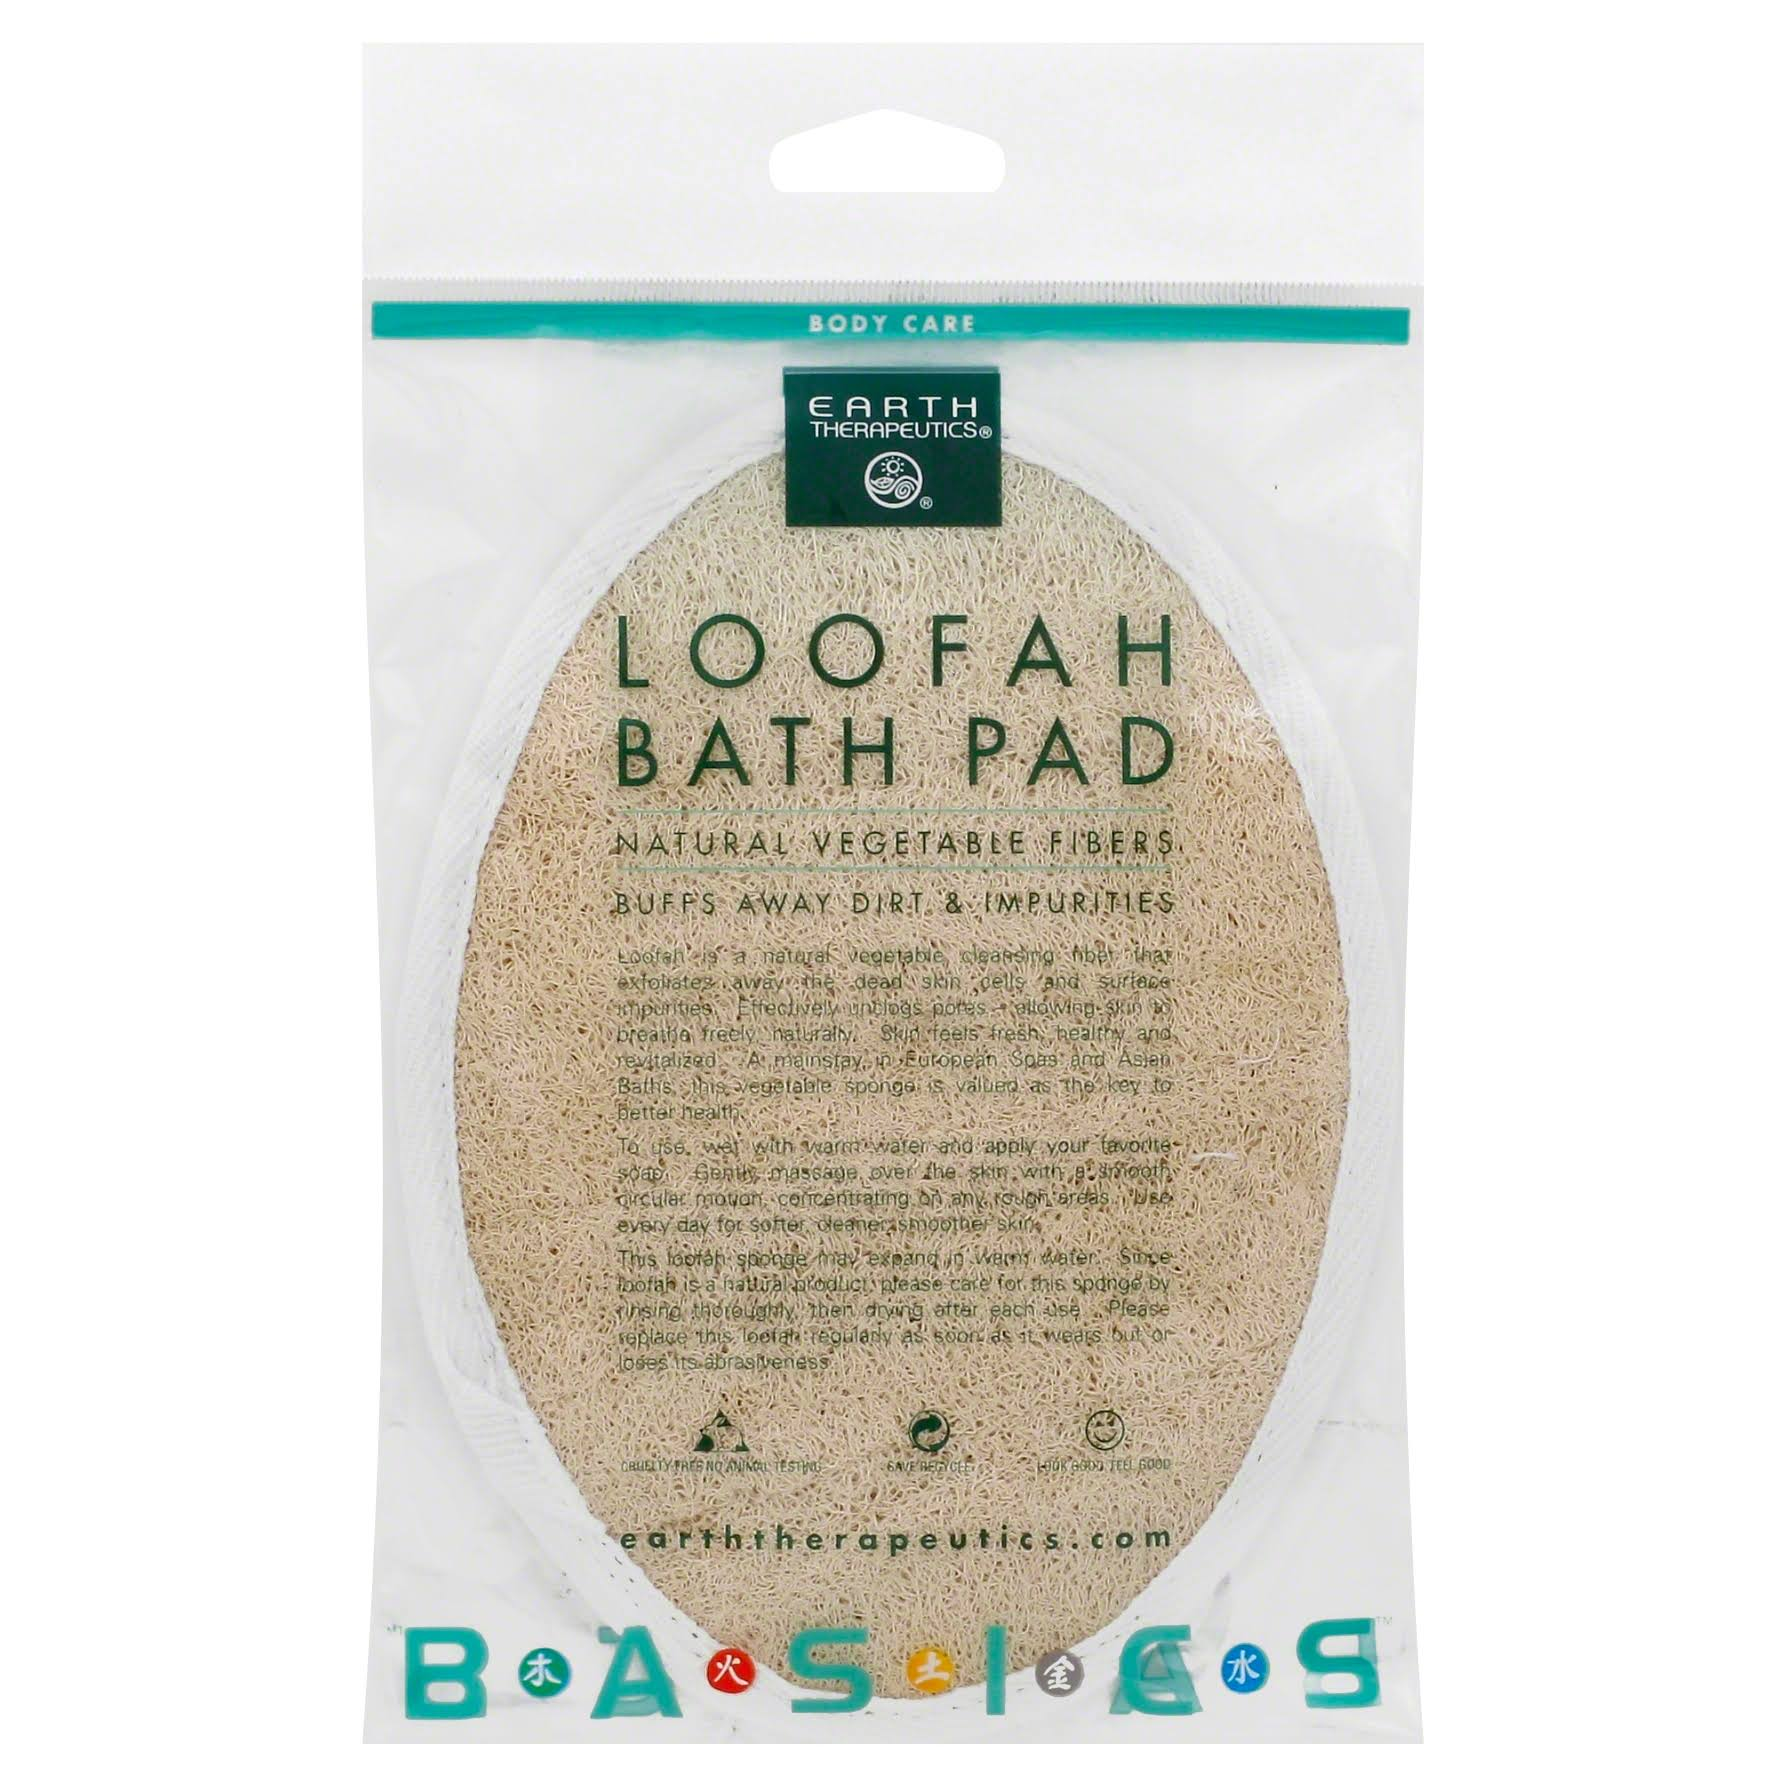 Earth Therapeutics Loofah, Bath Pad